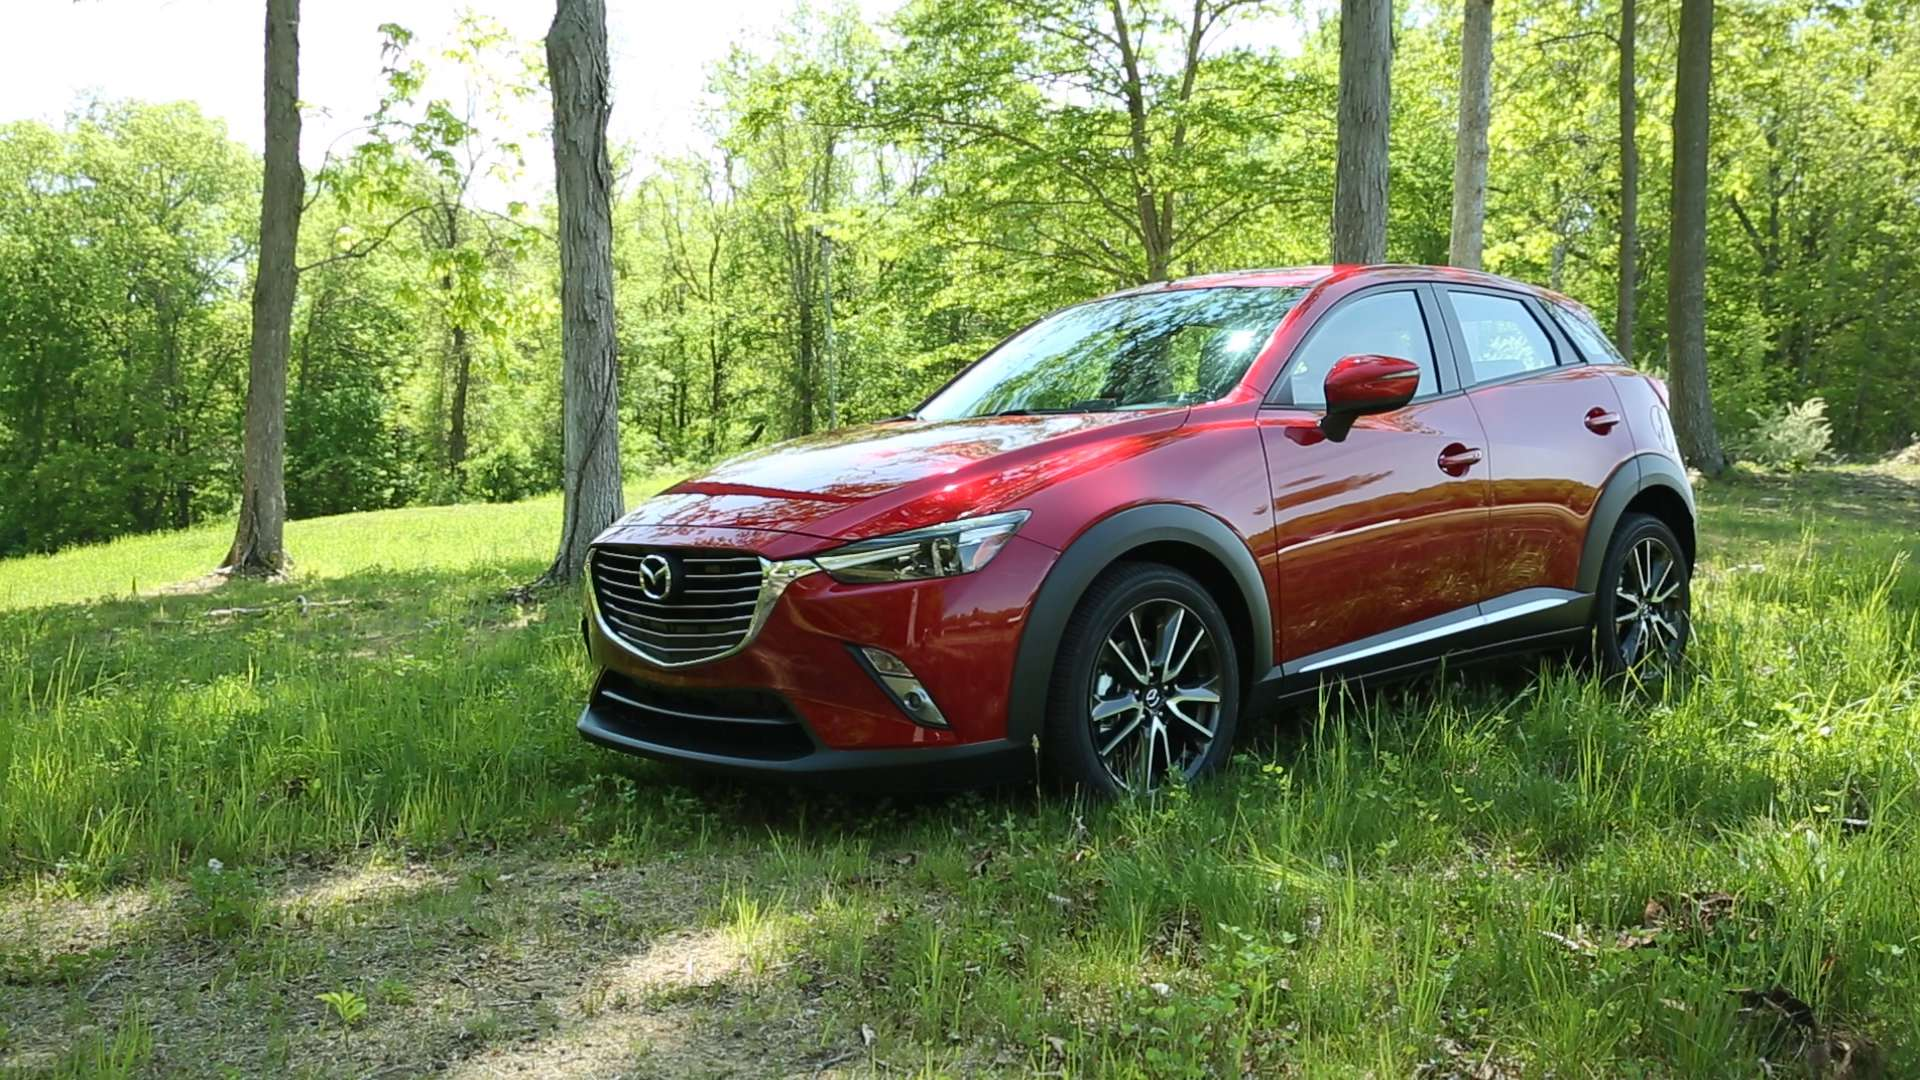 Mazda 3 Owners Manual: Reporting Safety Defects